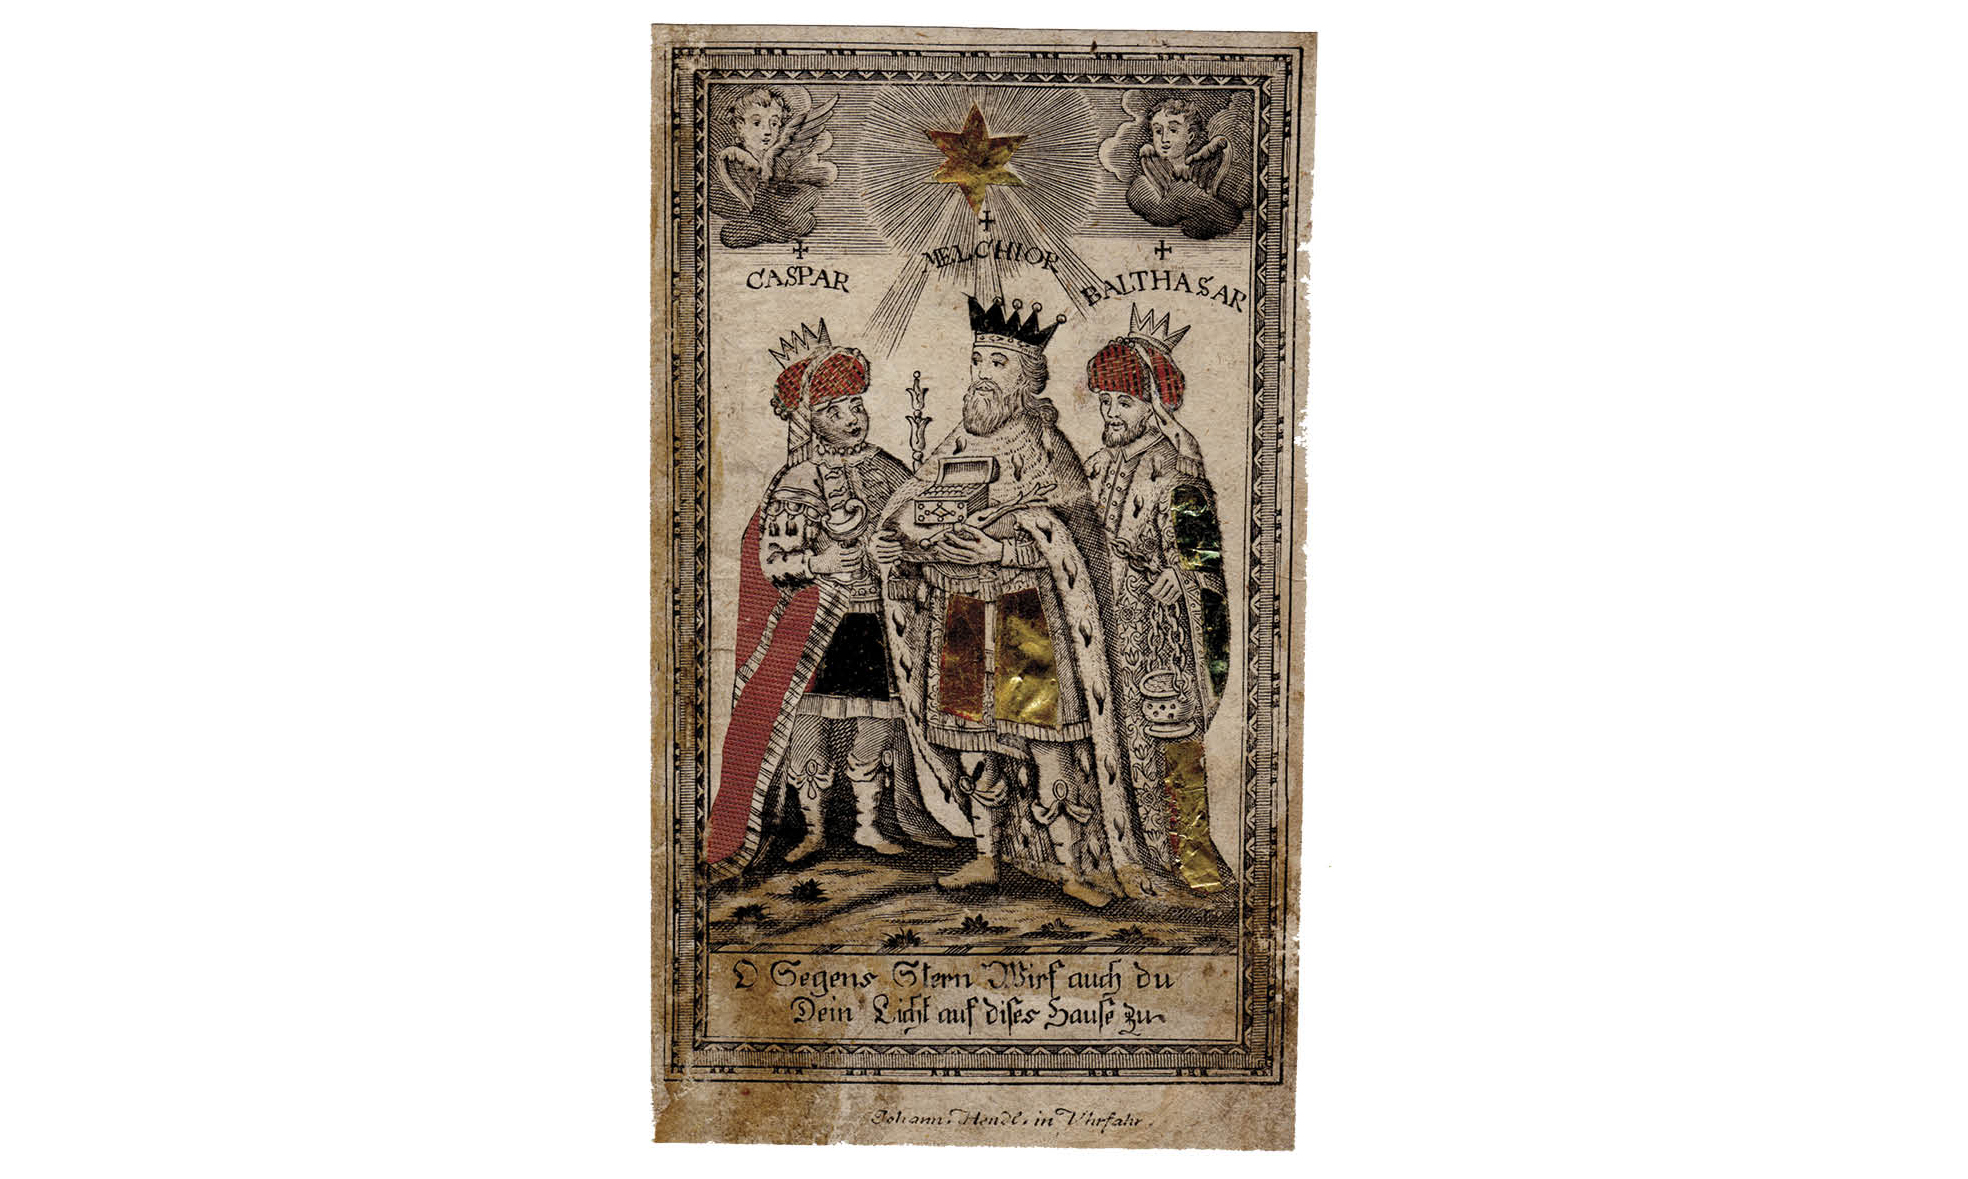 Figure 12:  Drei-Königzettel  (Three Kings Broadside), late 18th century. Heilman Collection.  A European broadside of the Three Kings Prayer, which was later republished in Pennsylvania, most notably, in Kutztown by Urich & Gehring ca. 1880. This prayer developed in the wake of veneration of the Three Kings following the moving of their legendary remains to the cathedral in Cologne. The prayer appeals to the Three Kings, symbolized by the initials C†M†B† for protection against natural disaster and the predations of the wicked.